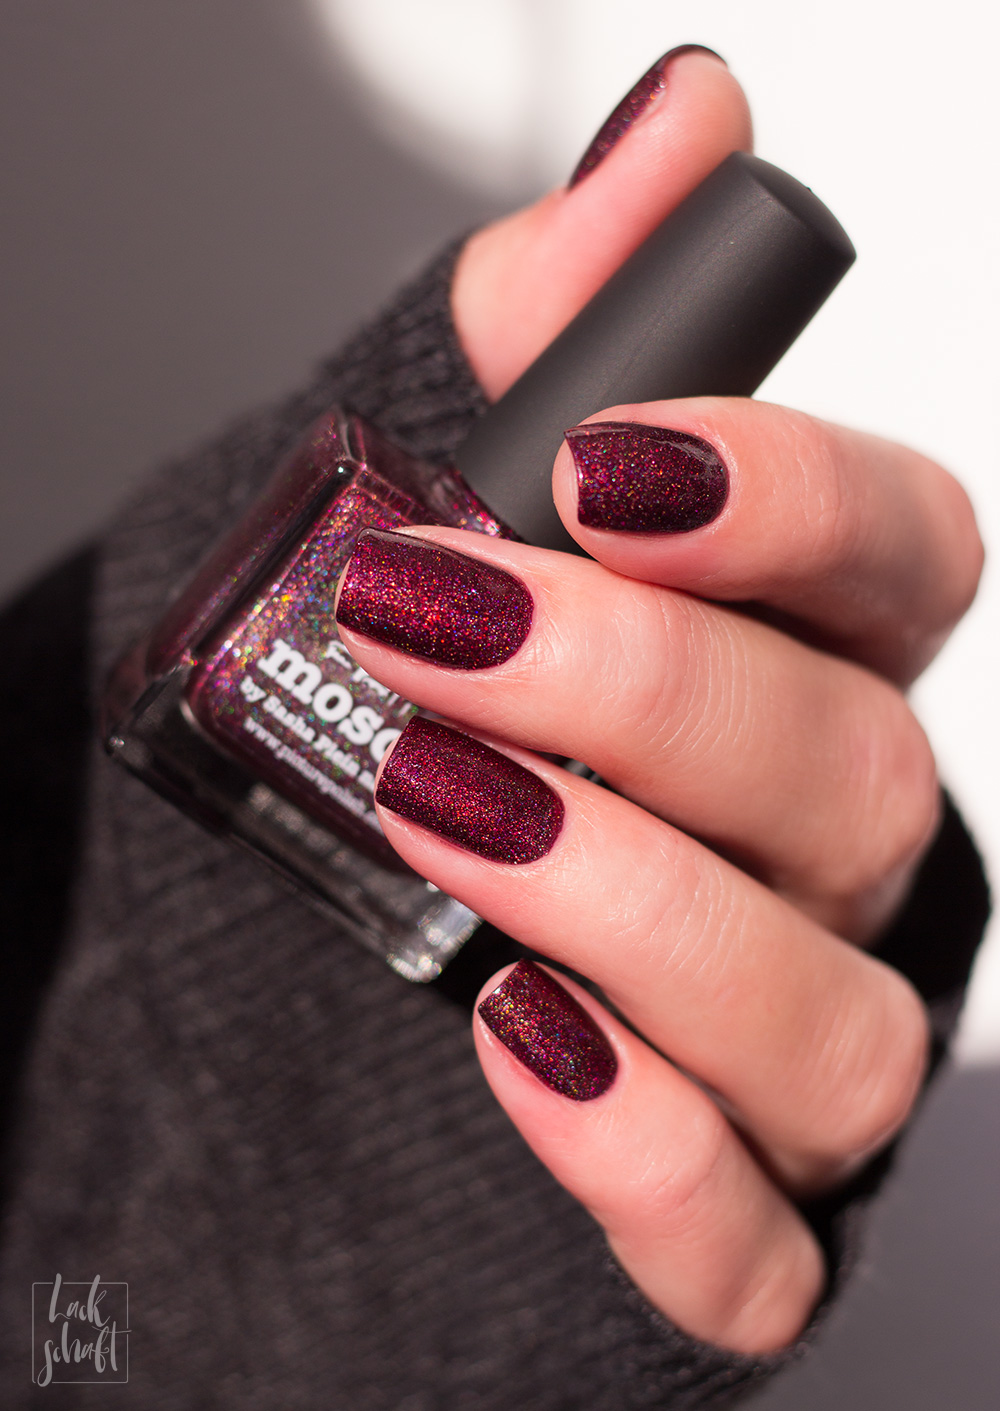 Picture-Polish-Moscow-Swatch-Nagellack-Nailpolish-Red-Bordeaux-4